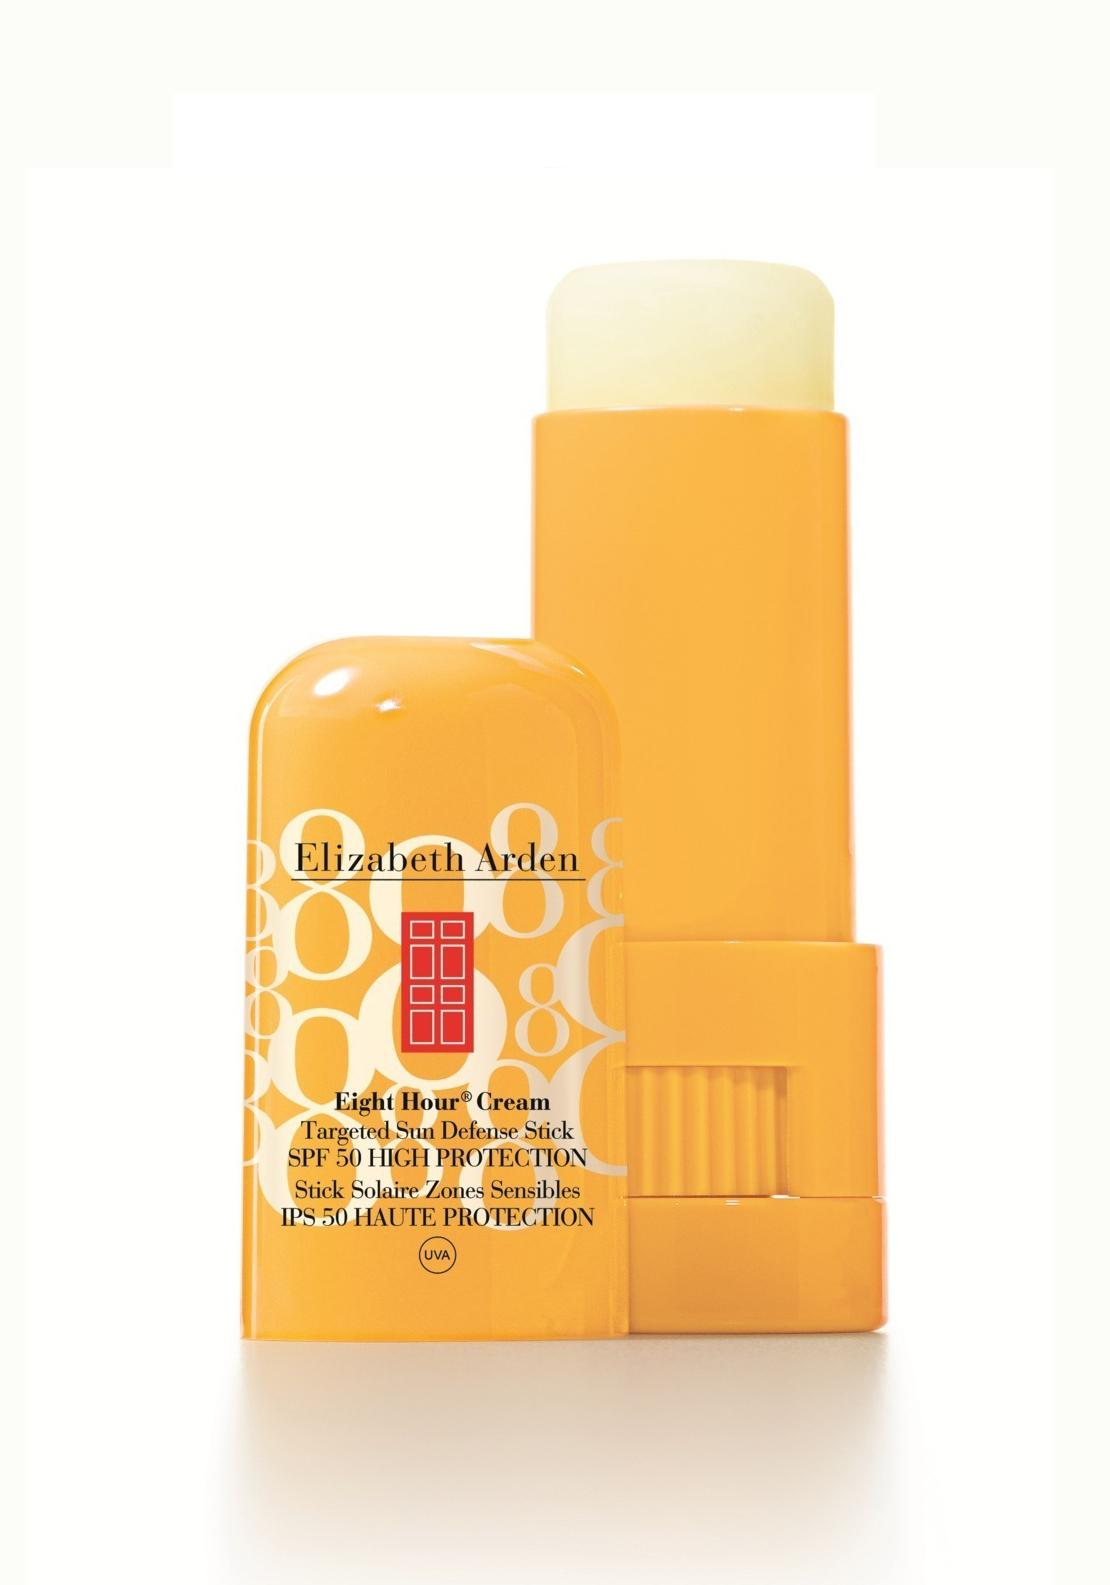 Elizabeth Arden Eight Hour Cream Targeted Sun Defense Stick, 6.8g